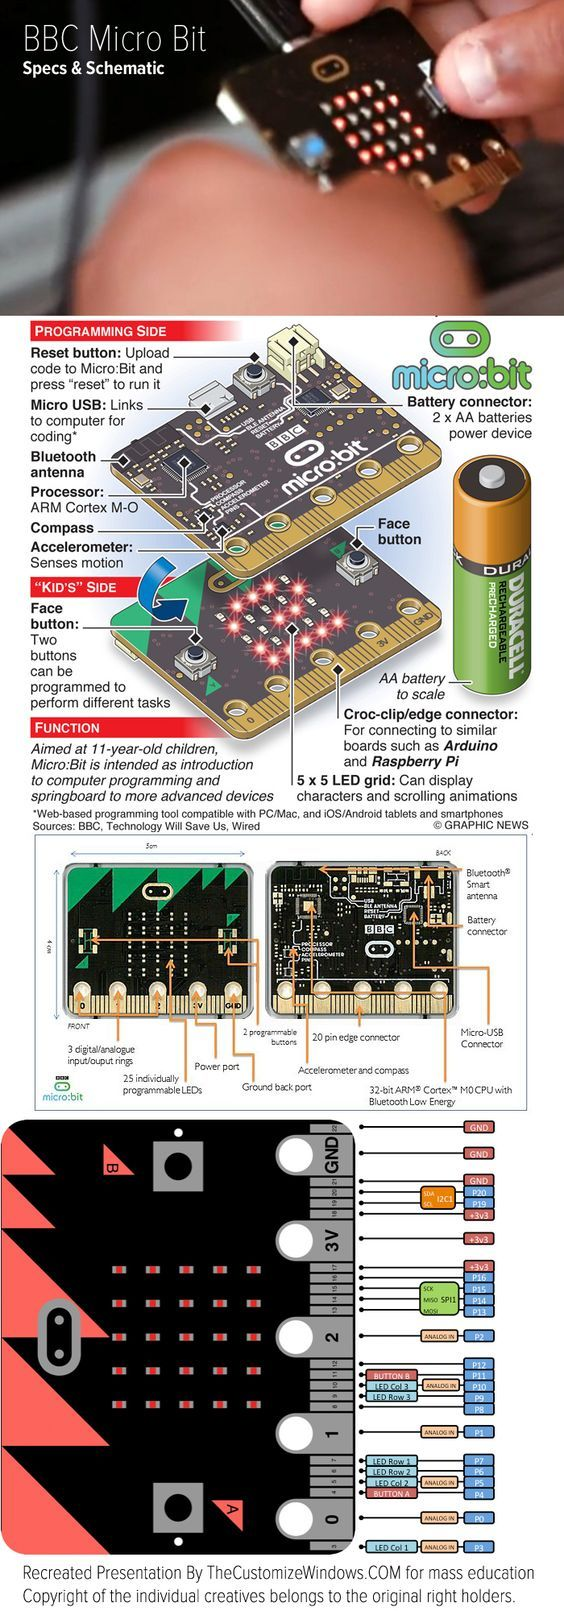 bbc model b circuit diagram the wiring diagram bbc micro bit an embedded system for learning coding wiring diagram